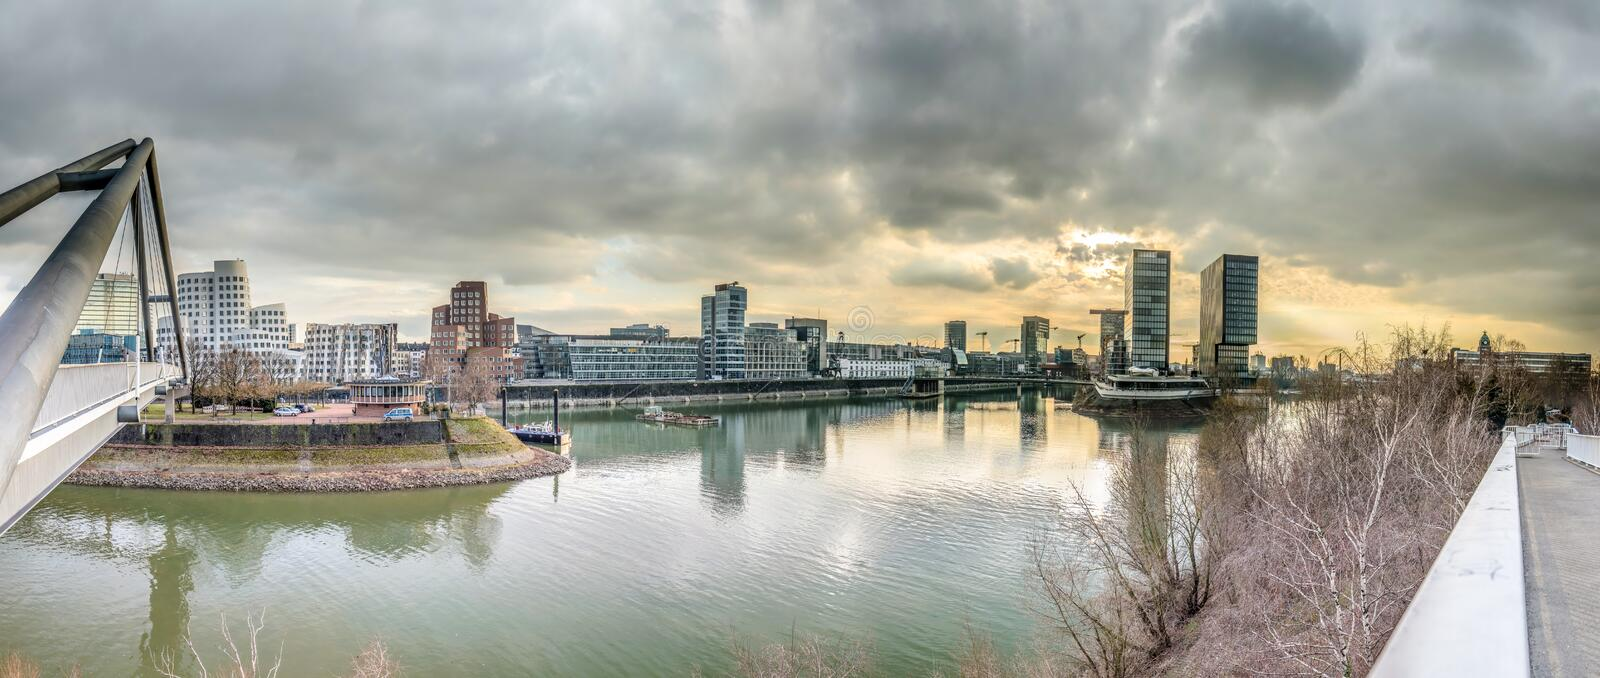 Skyline of Duesseldorf during sunset. Skyline of Duesseldorf in Germany stock photos